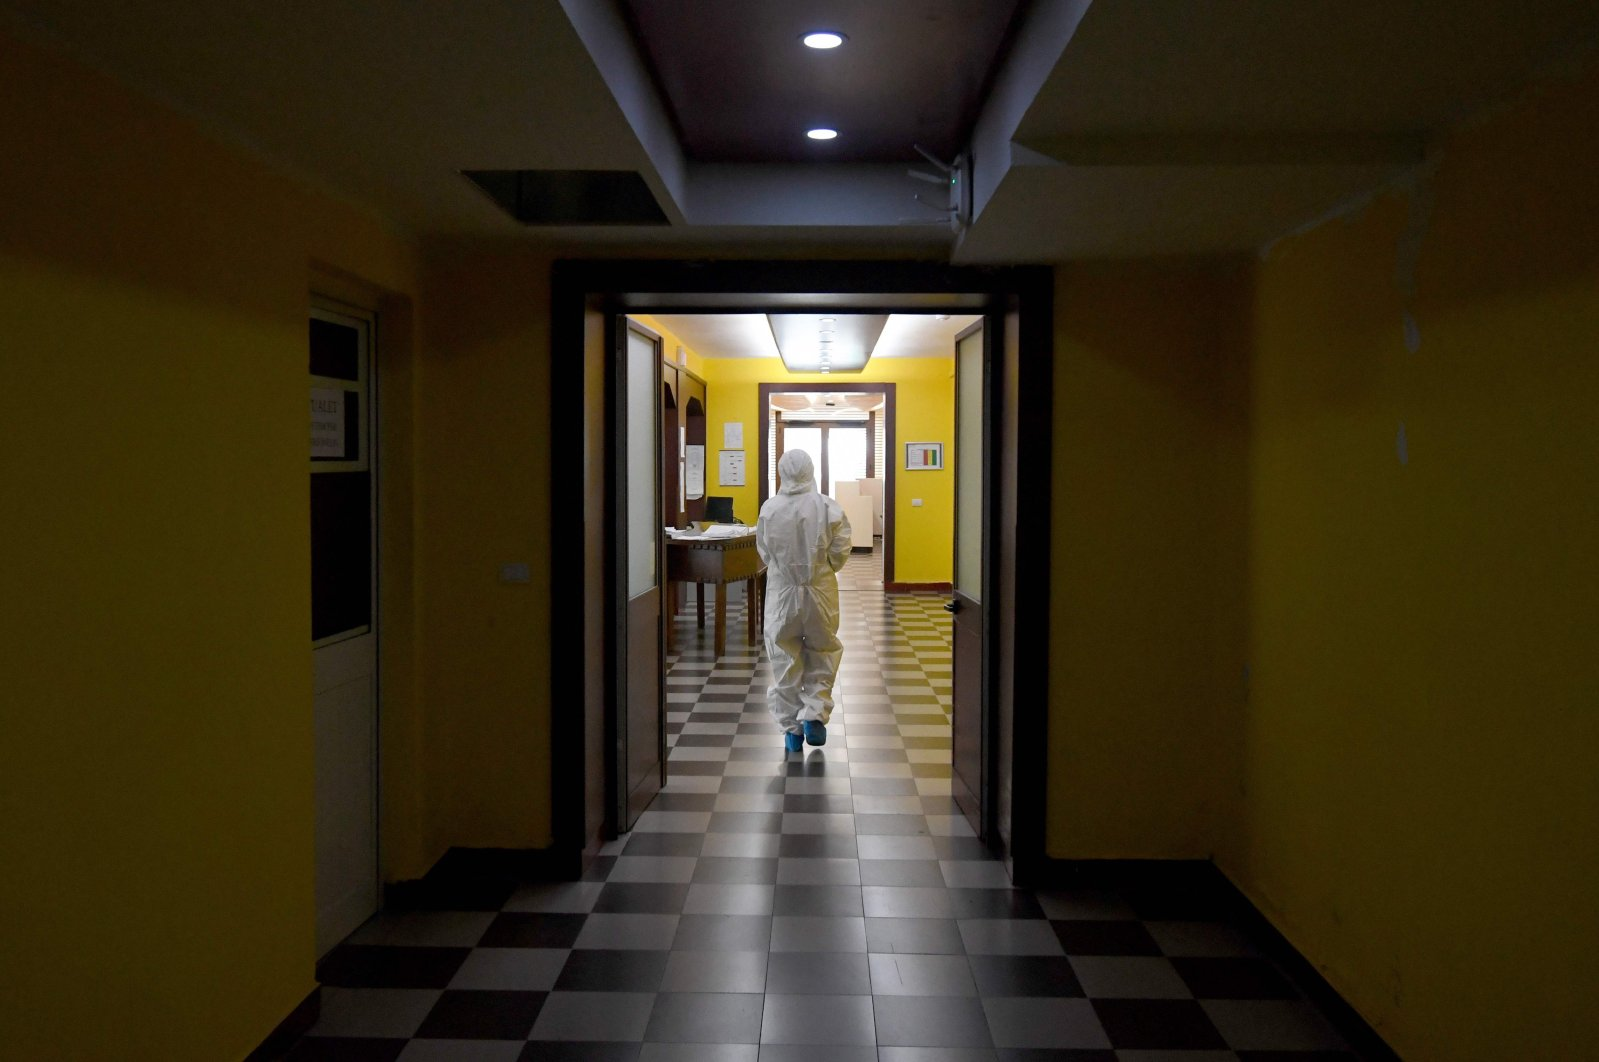 A medical worker walks through a corridor at the Shefqet Ndroqi Sanatorium hospital converted to receive patients infected with COVID-19 in Tirana, Albania, April 30, 2020. (AFP Photo)